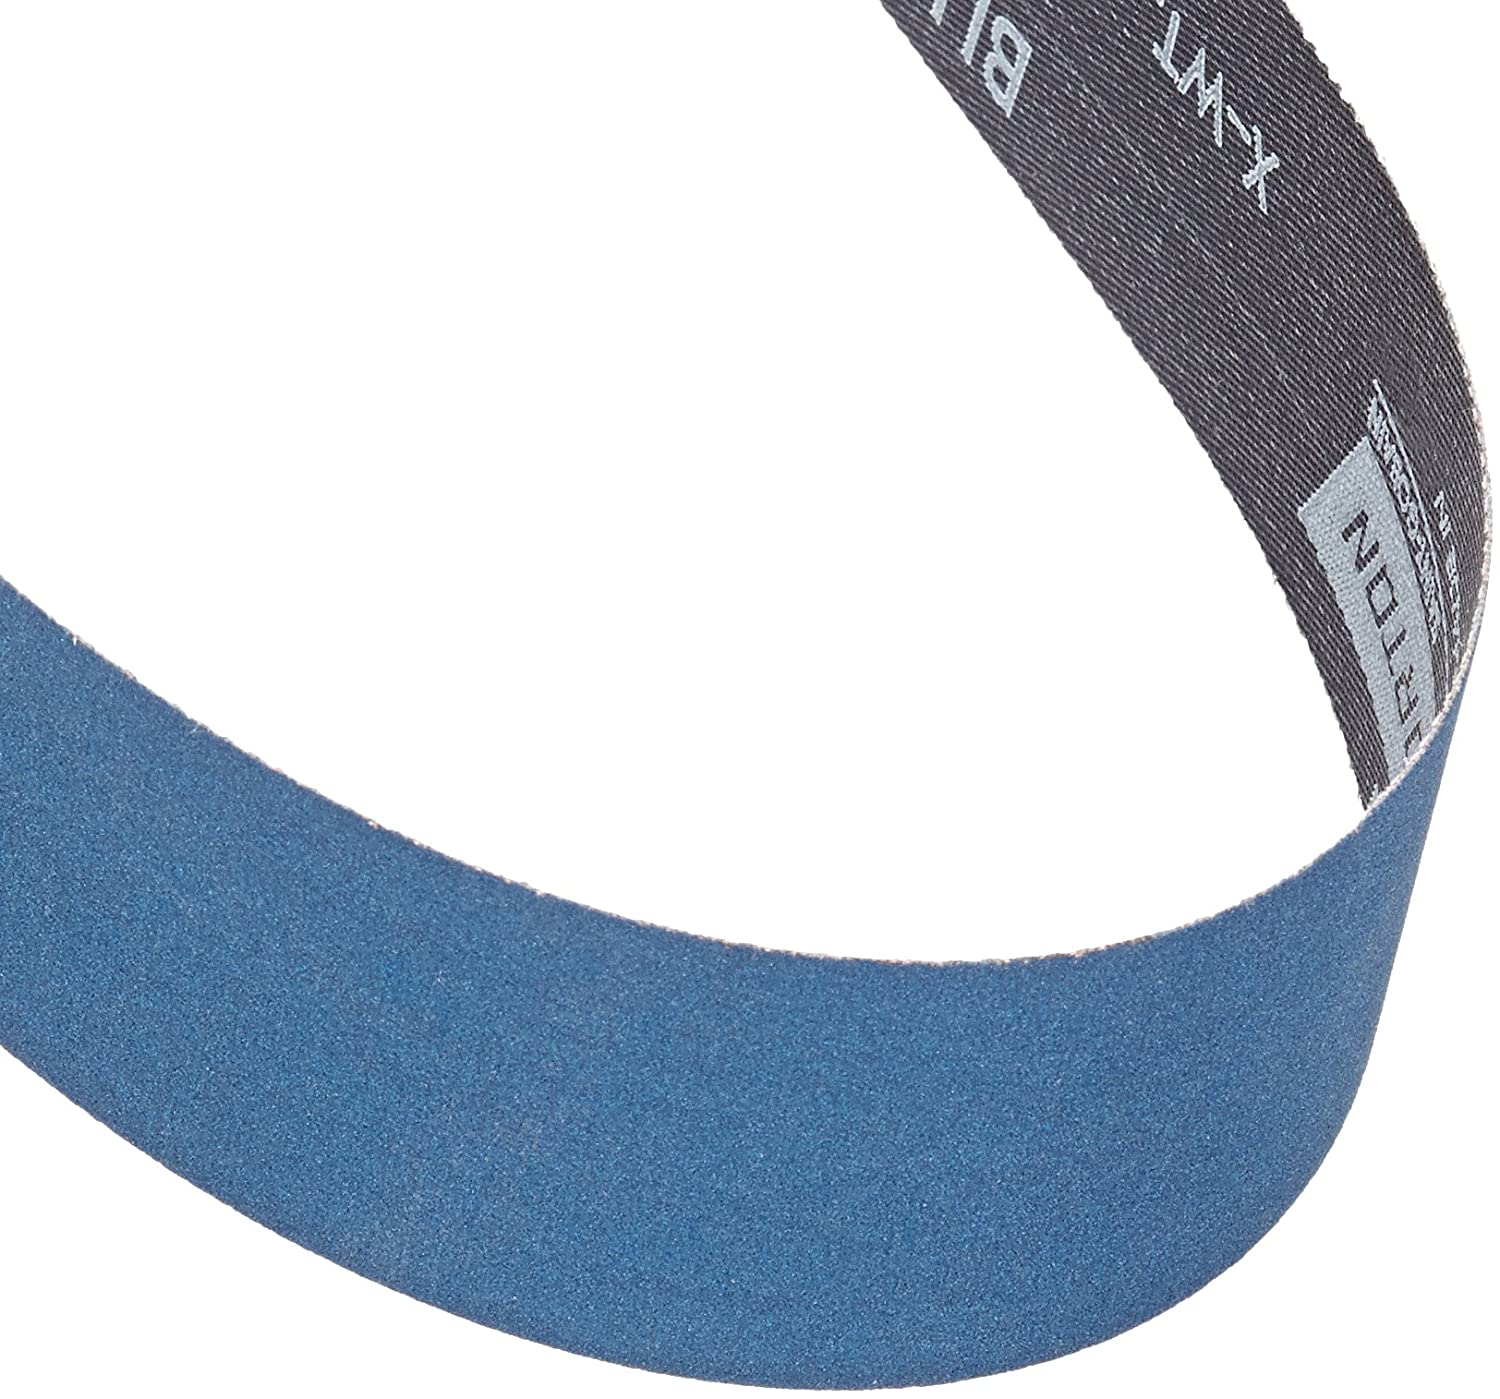 Grit 120 Zirconia Alumina Norton BlueFire R823P Benchstand Abrasive Belt Pack of 5 Polyester Backing Waterproof 42 Length 1 Width